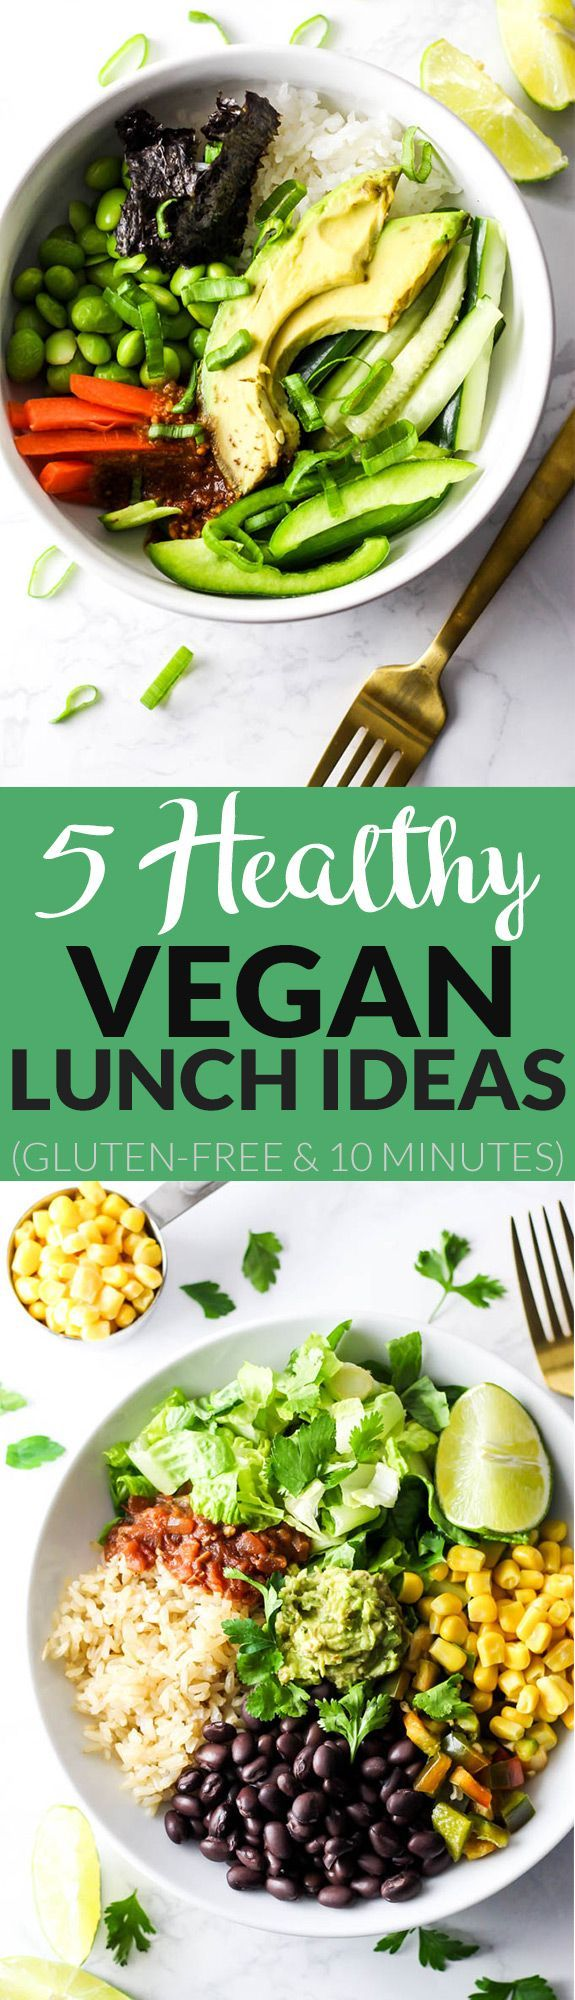 Use these 5 Healthy Vegan Lunch Ideas to pack wholesome lunches for work or school! These recipes are packed with vegetables & flavor to keep you satisfied. @VeeteeUSA #ad